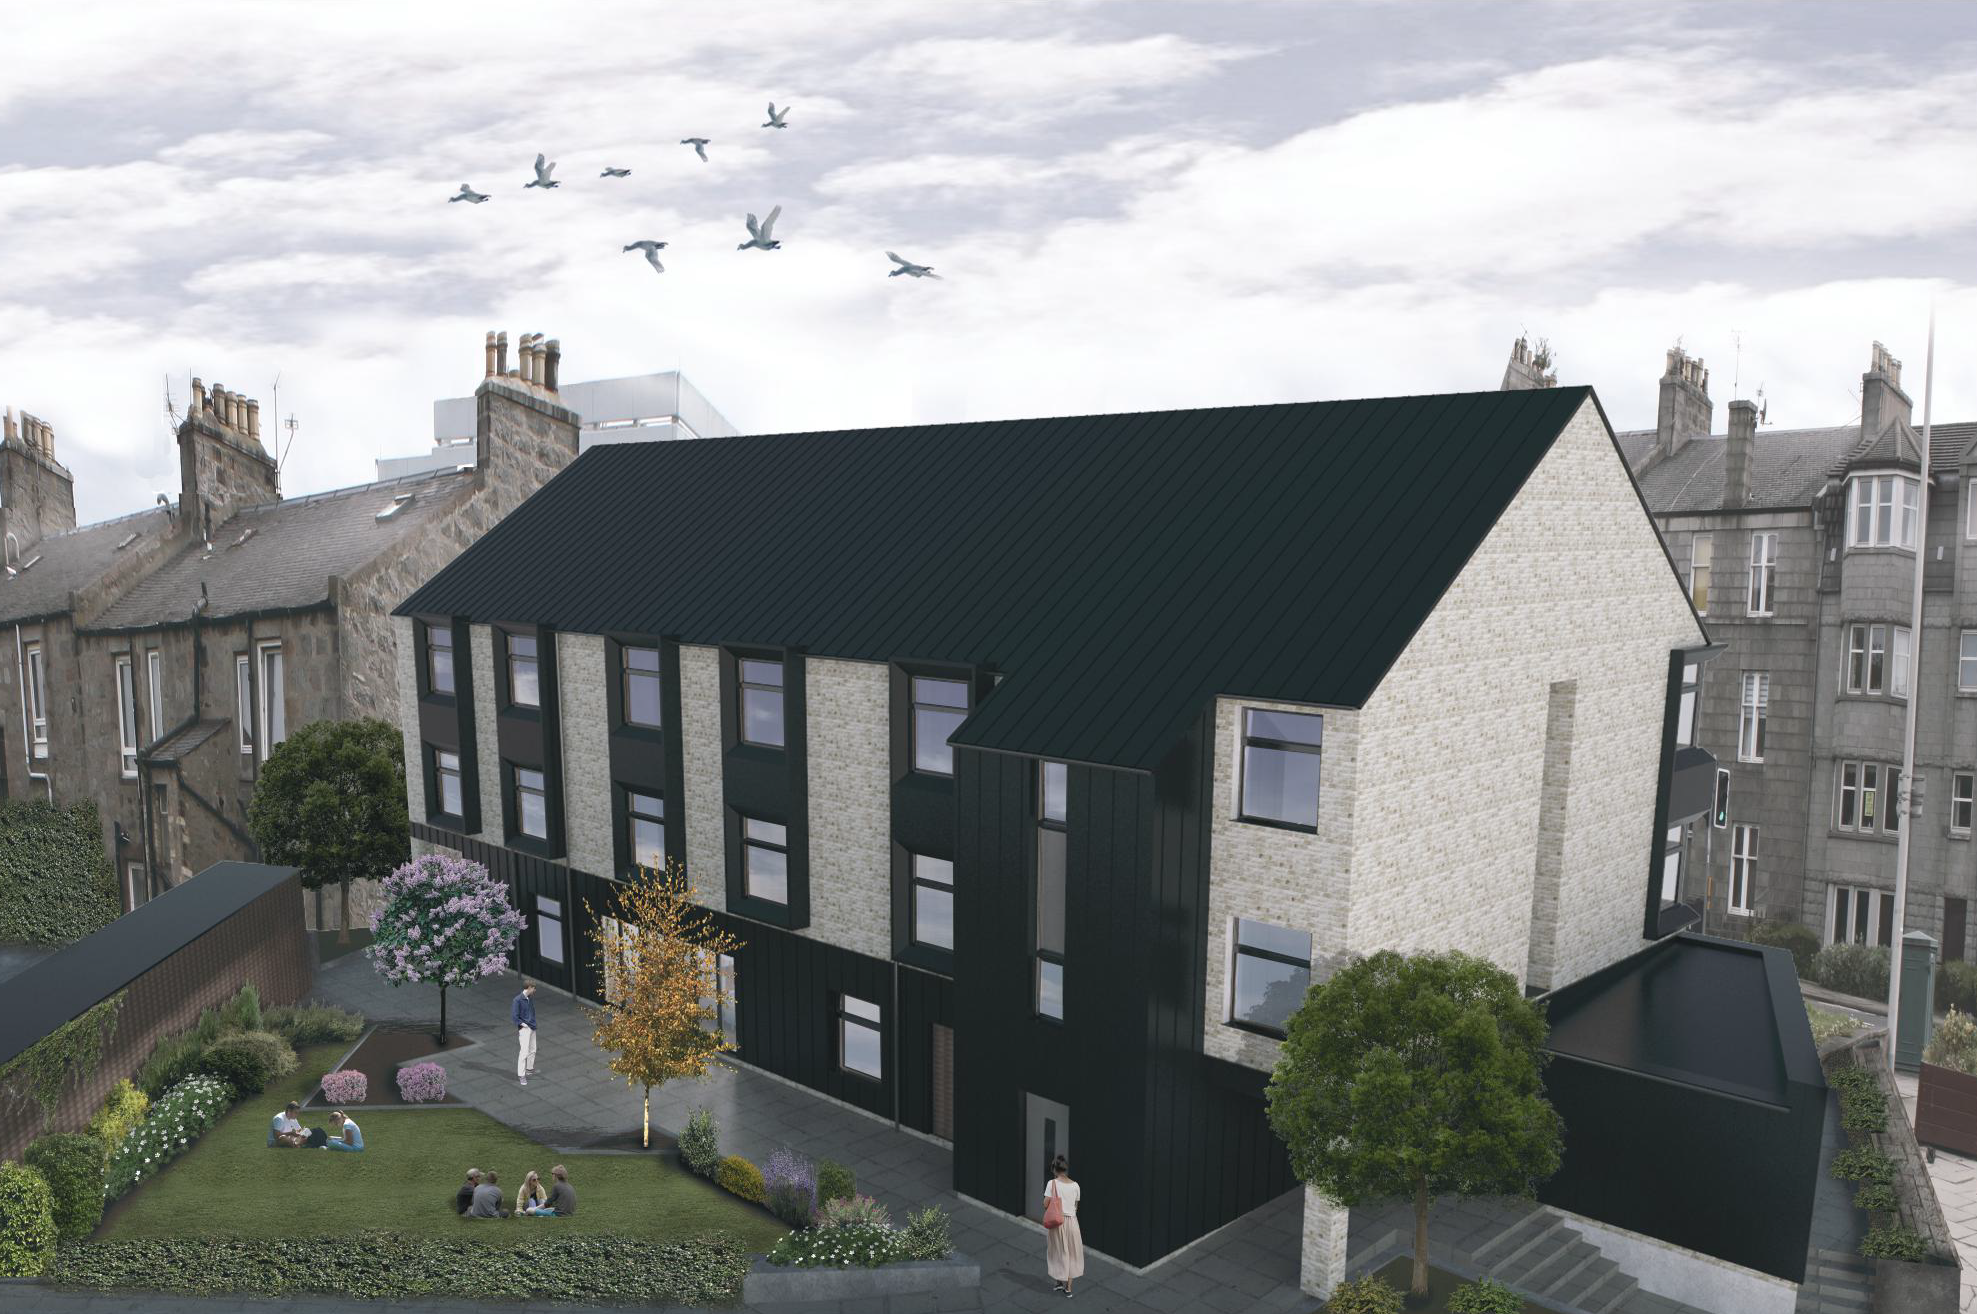 The facility is being built on the corner of Abergeldie Road and Holburn Street